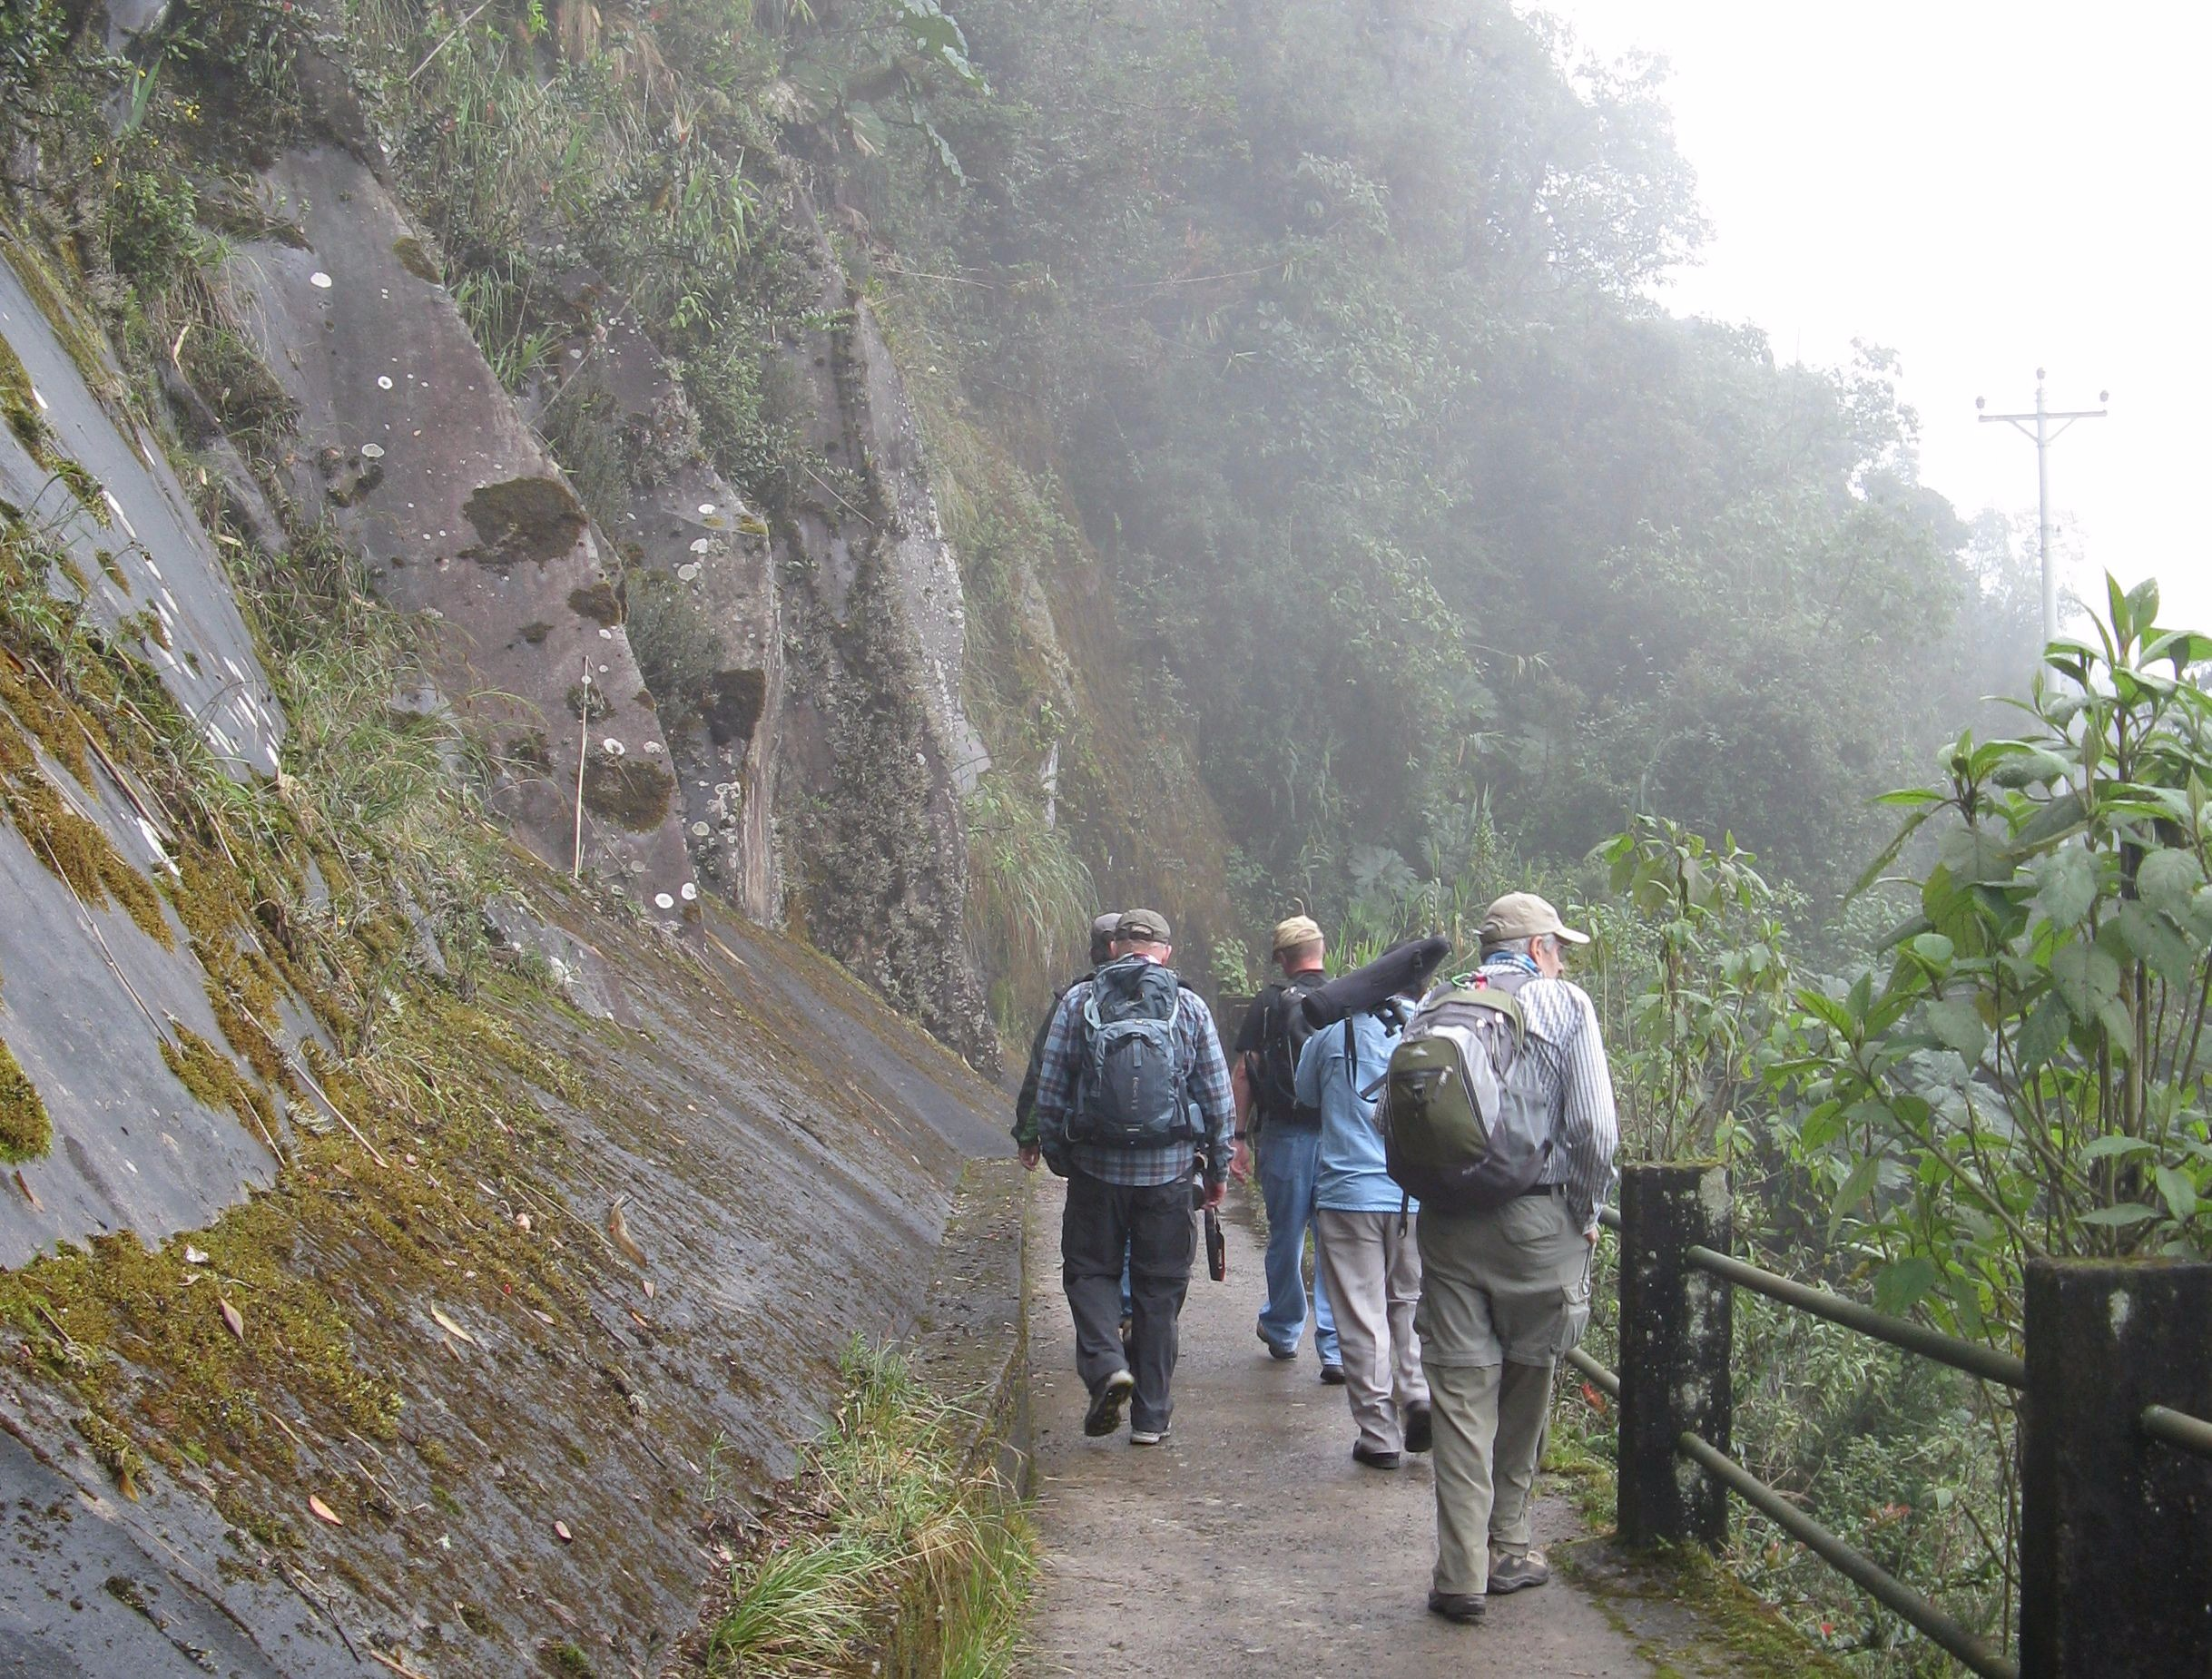 A hike in the Yanacocha Nature Reserve.